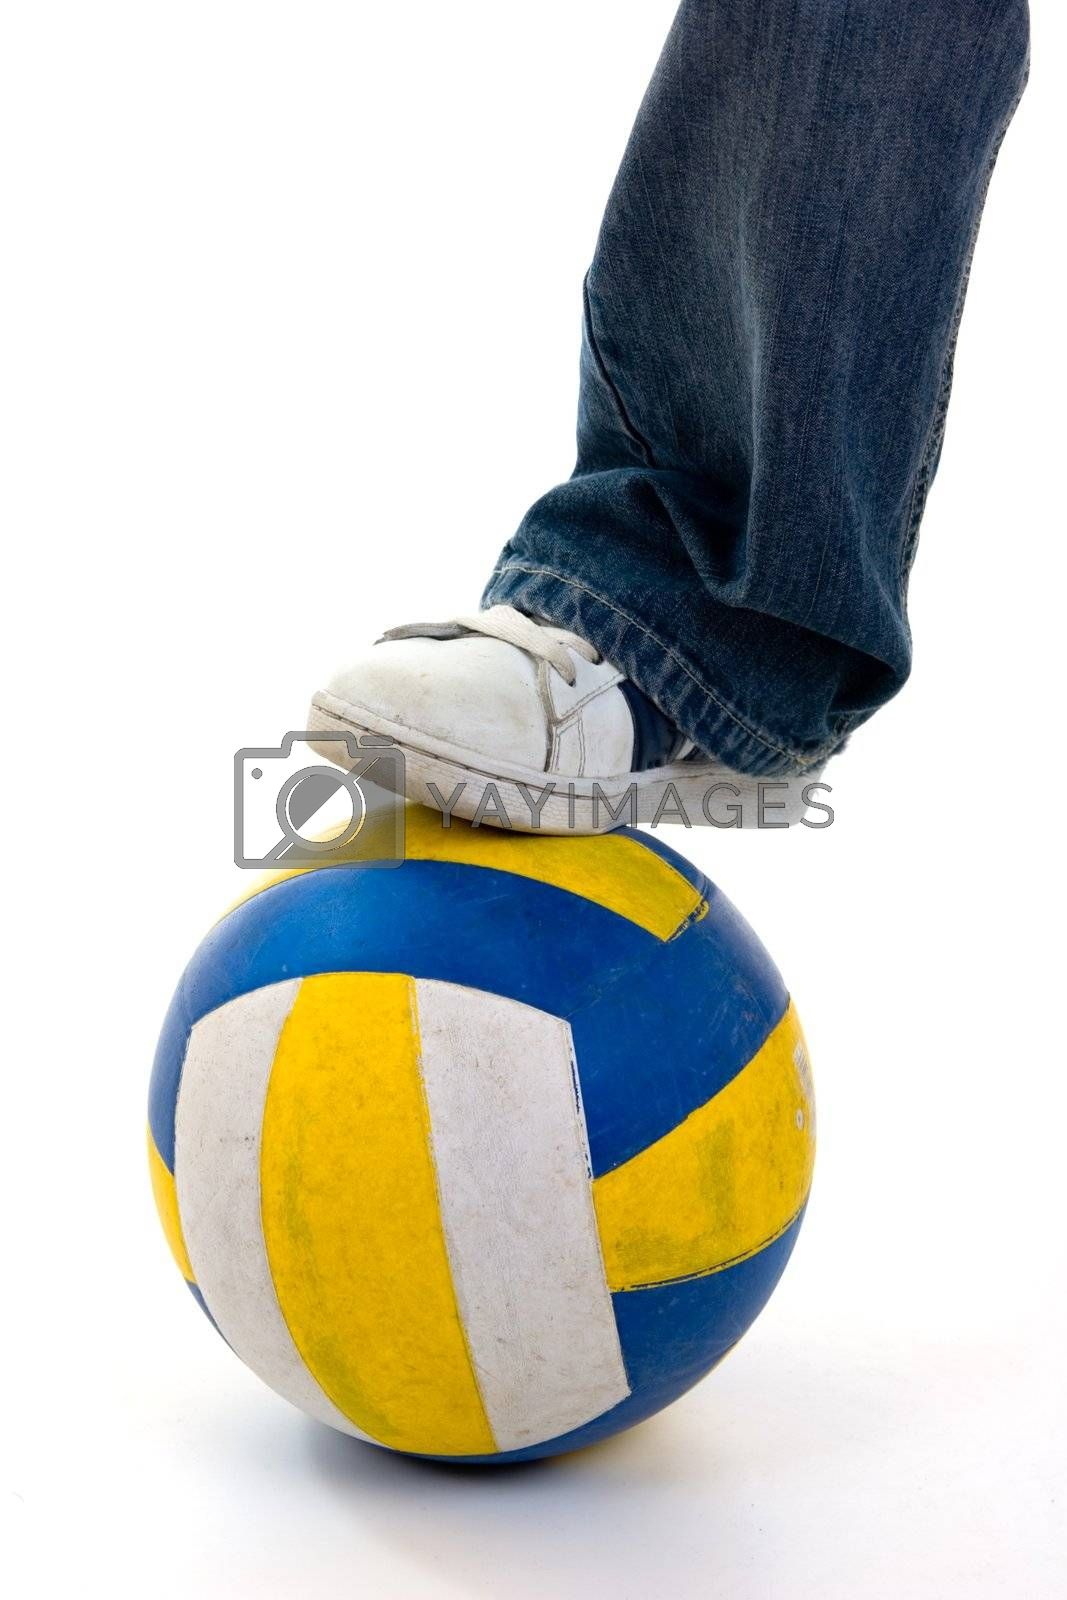 Foot on ball on white background.